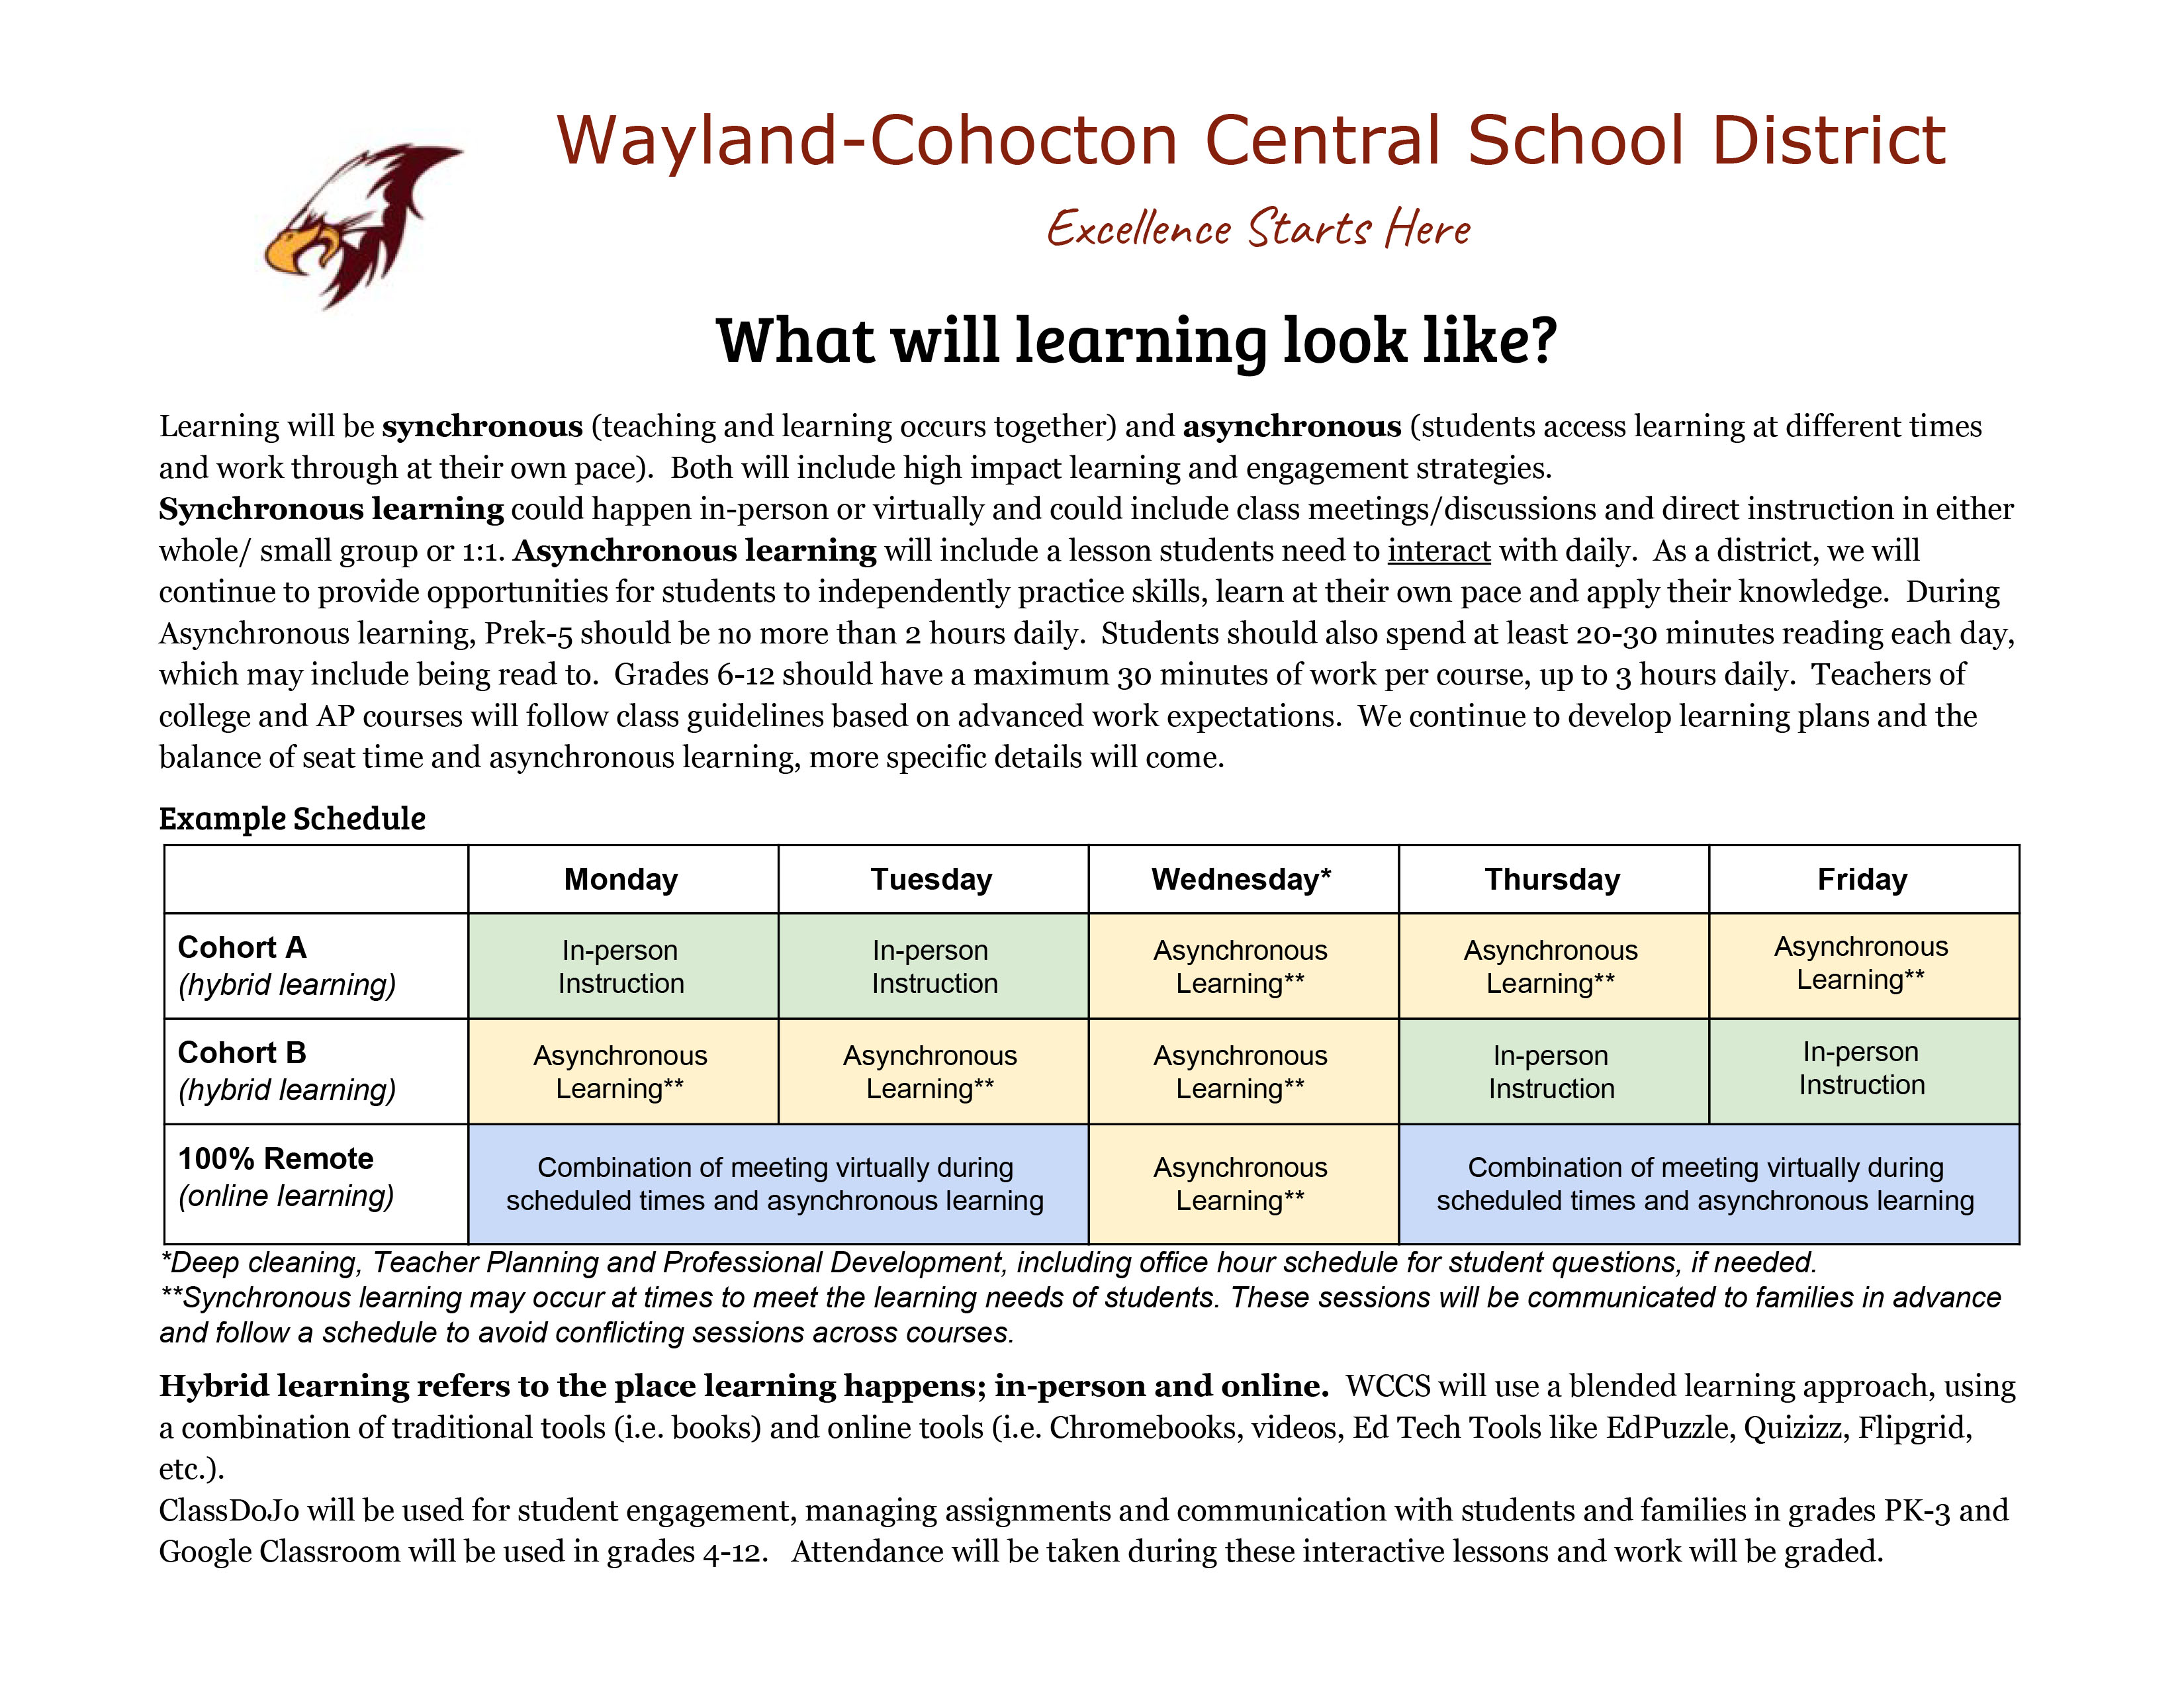 WHAT WILL LEARNING LOOK LIKE? INFO